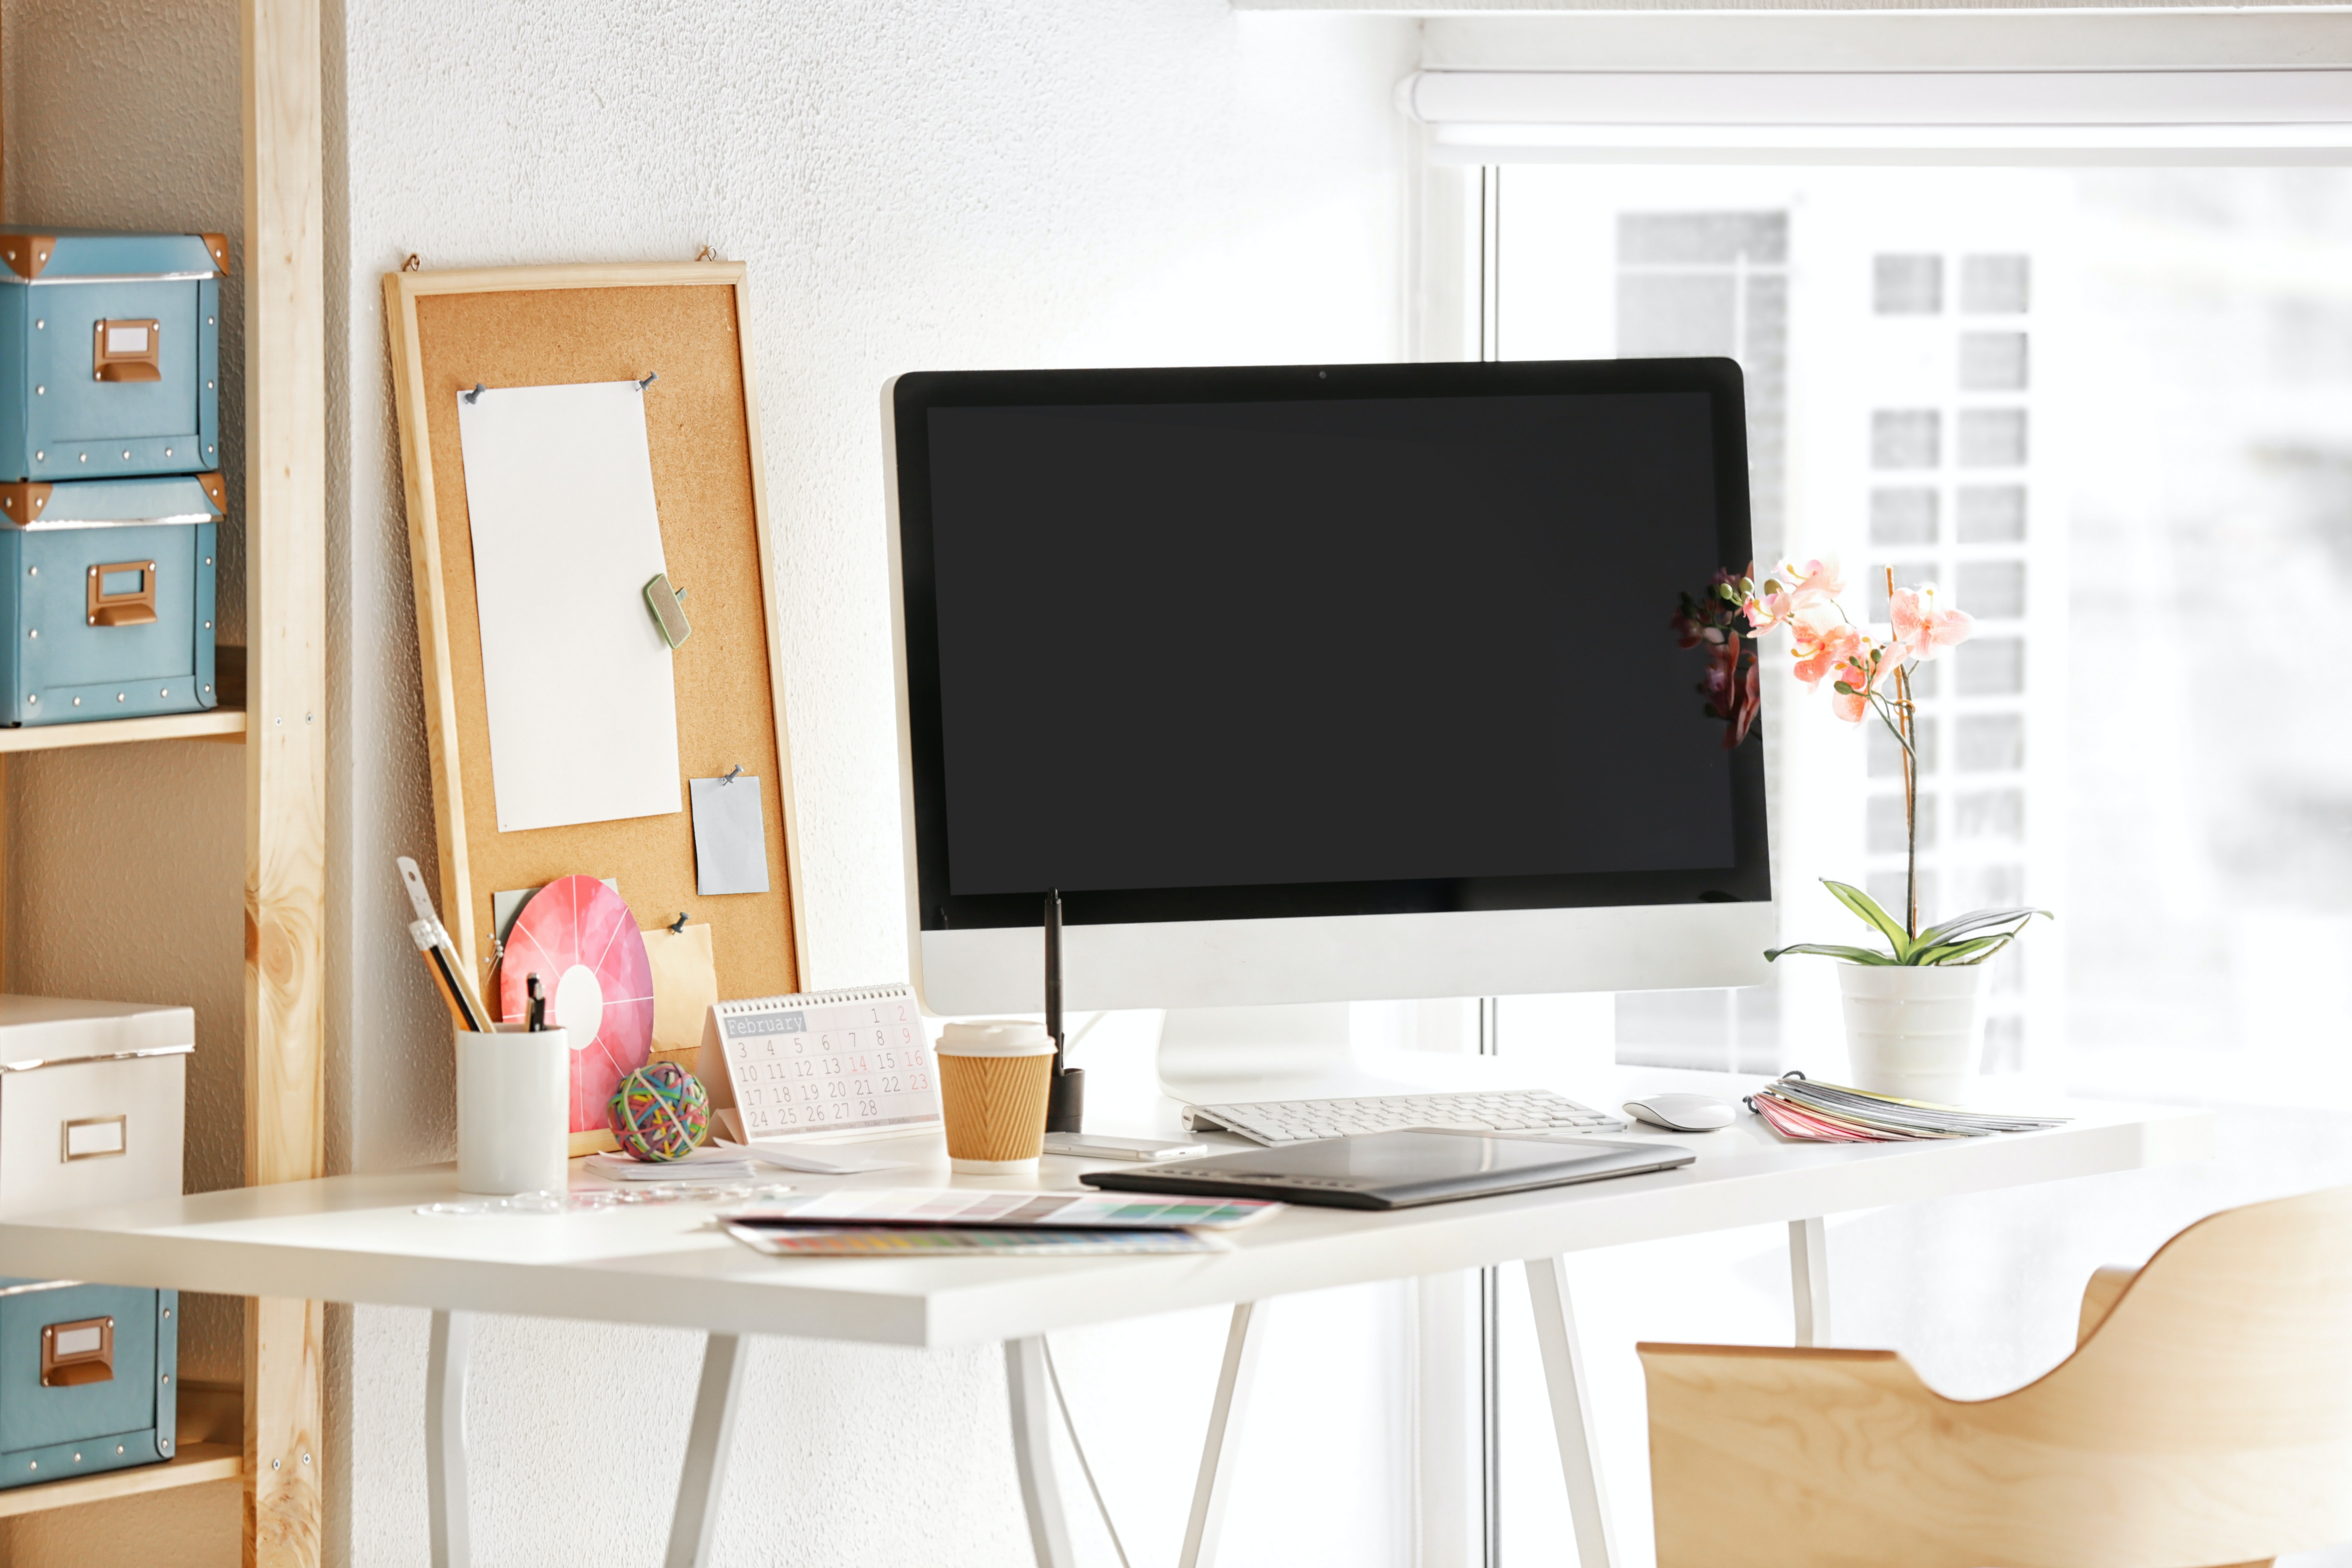 Ikea Com Desk How To Declutter Your Desk According To The Pros At Ikea